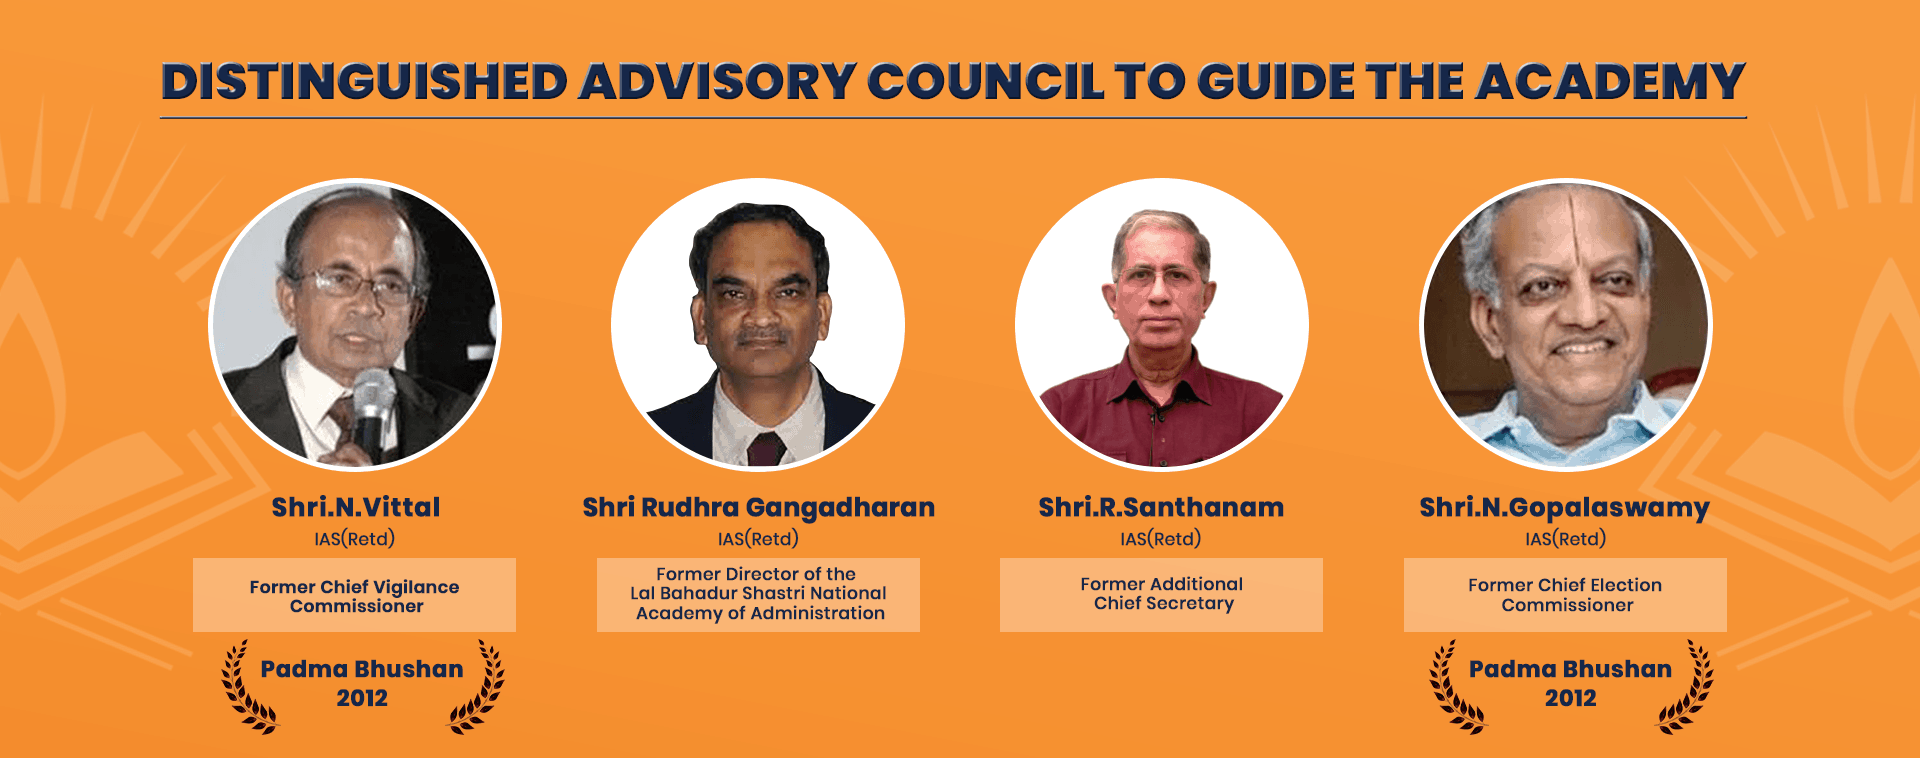 Advisory council members of chinmaya ias academy